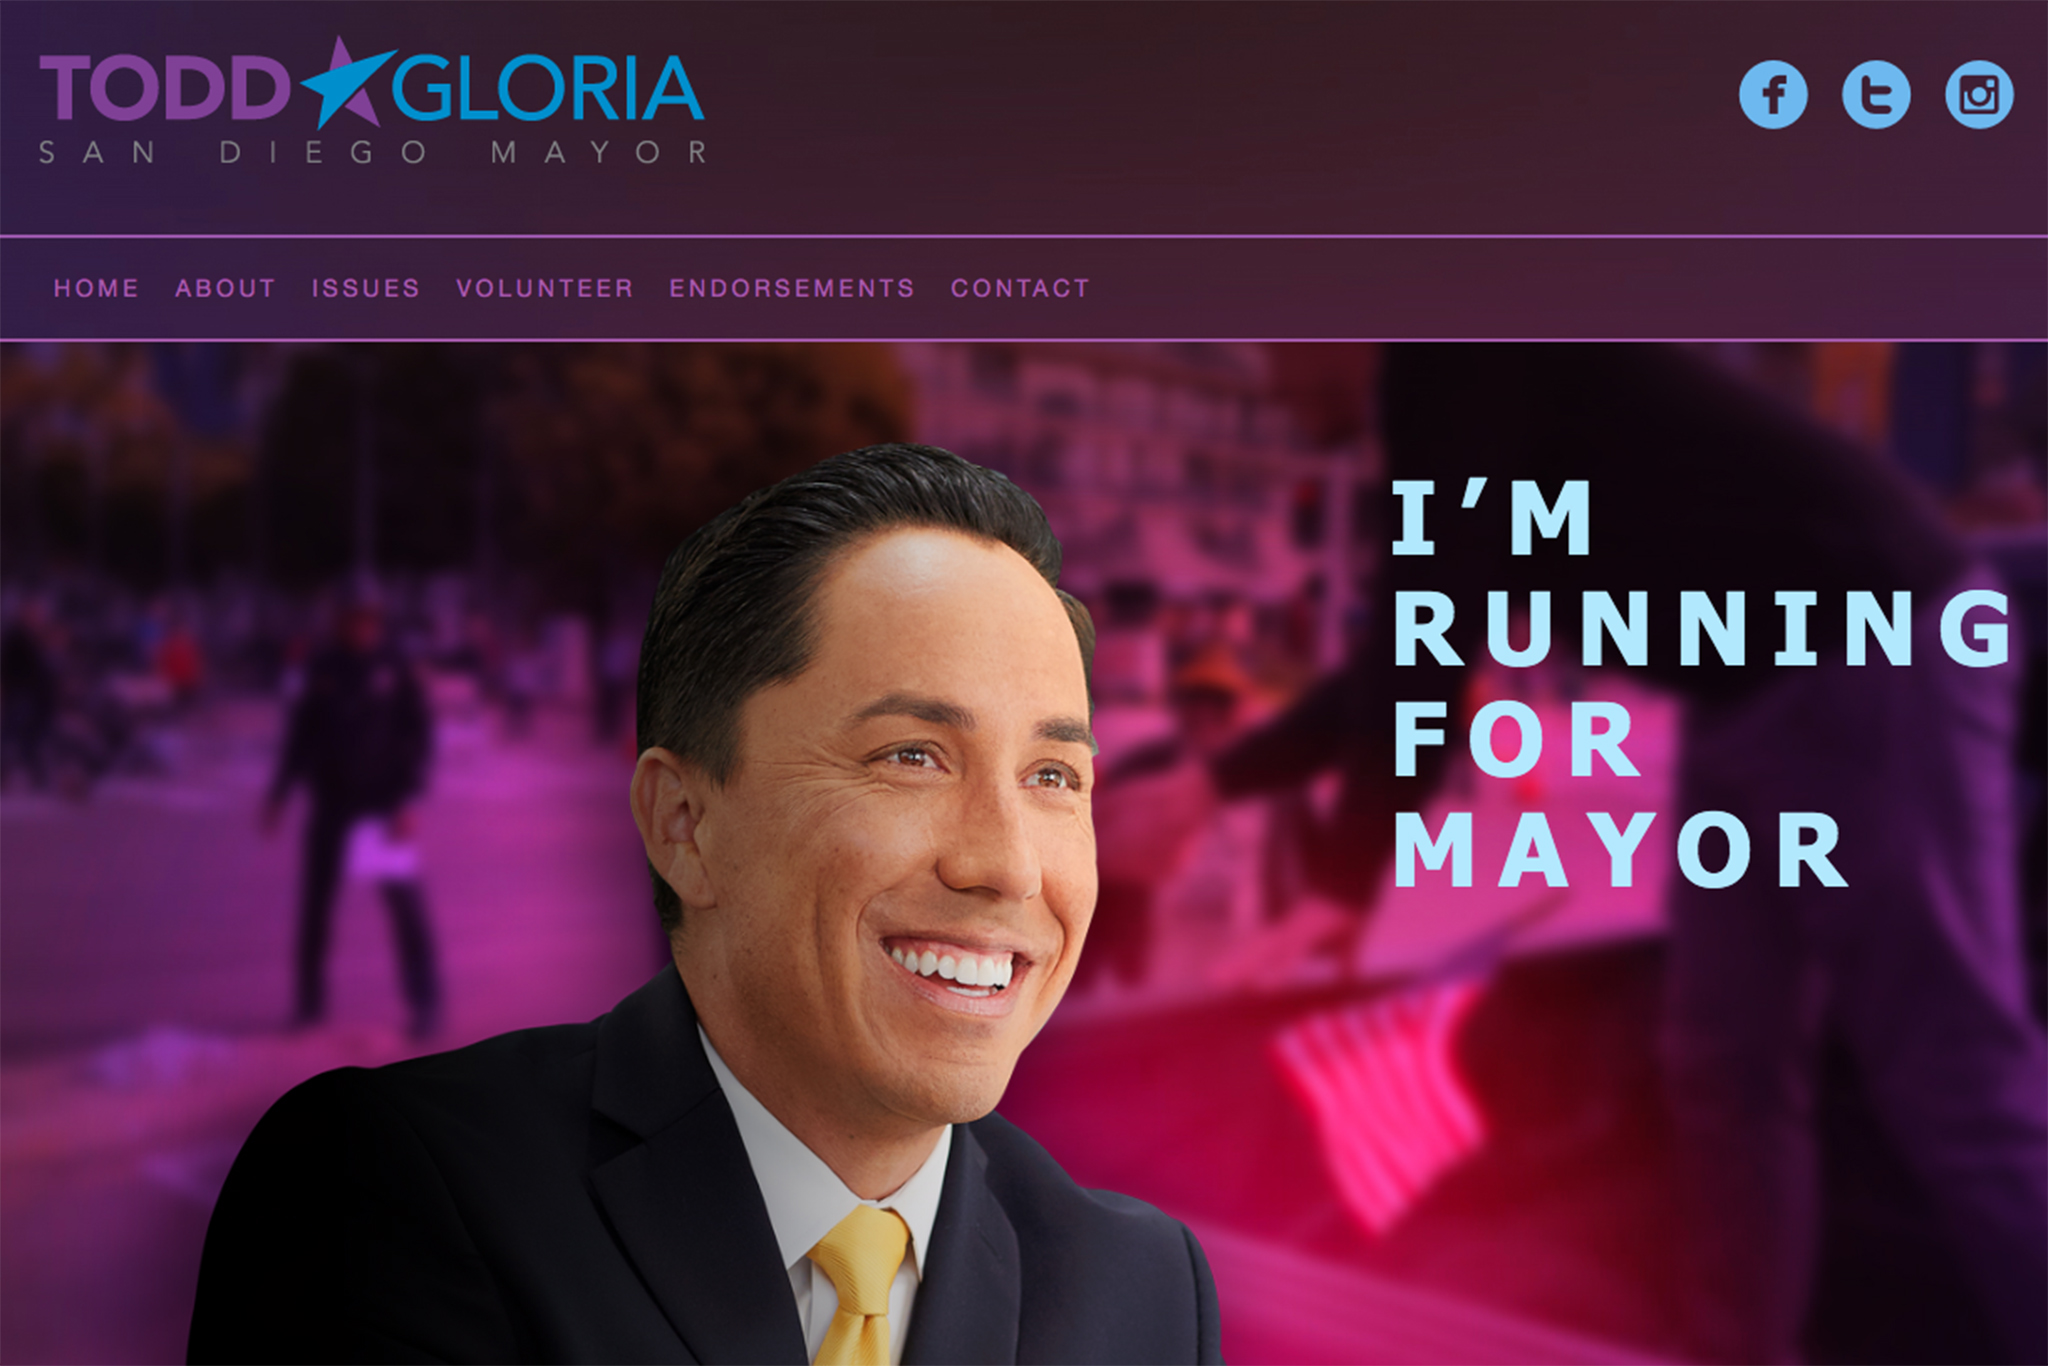 Todd Gloria takes over the charity scam from Faulconer